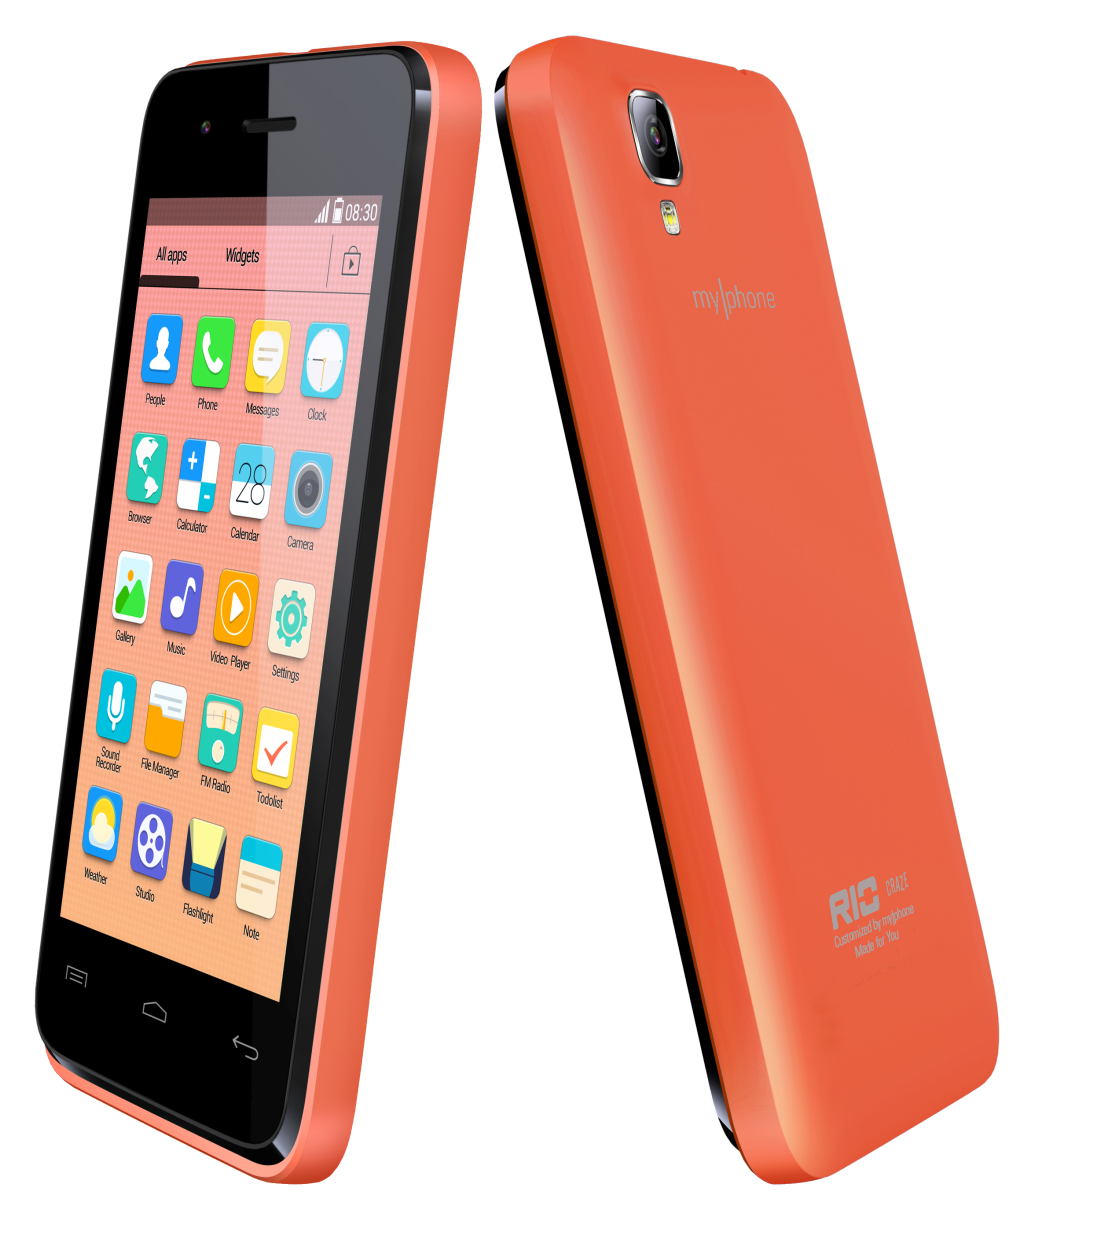 Phone Android Phone With Kitkat Os myphone rio craze launches as an affordable dual core smartphone with android kitkat os